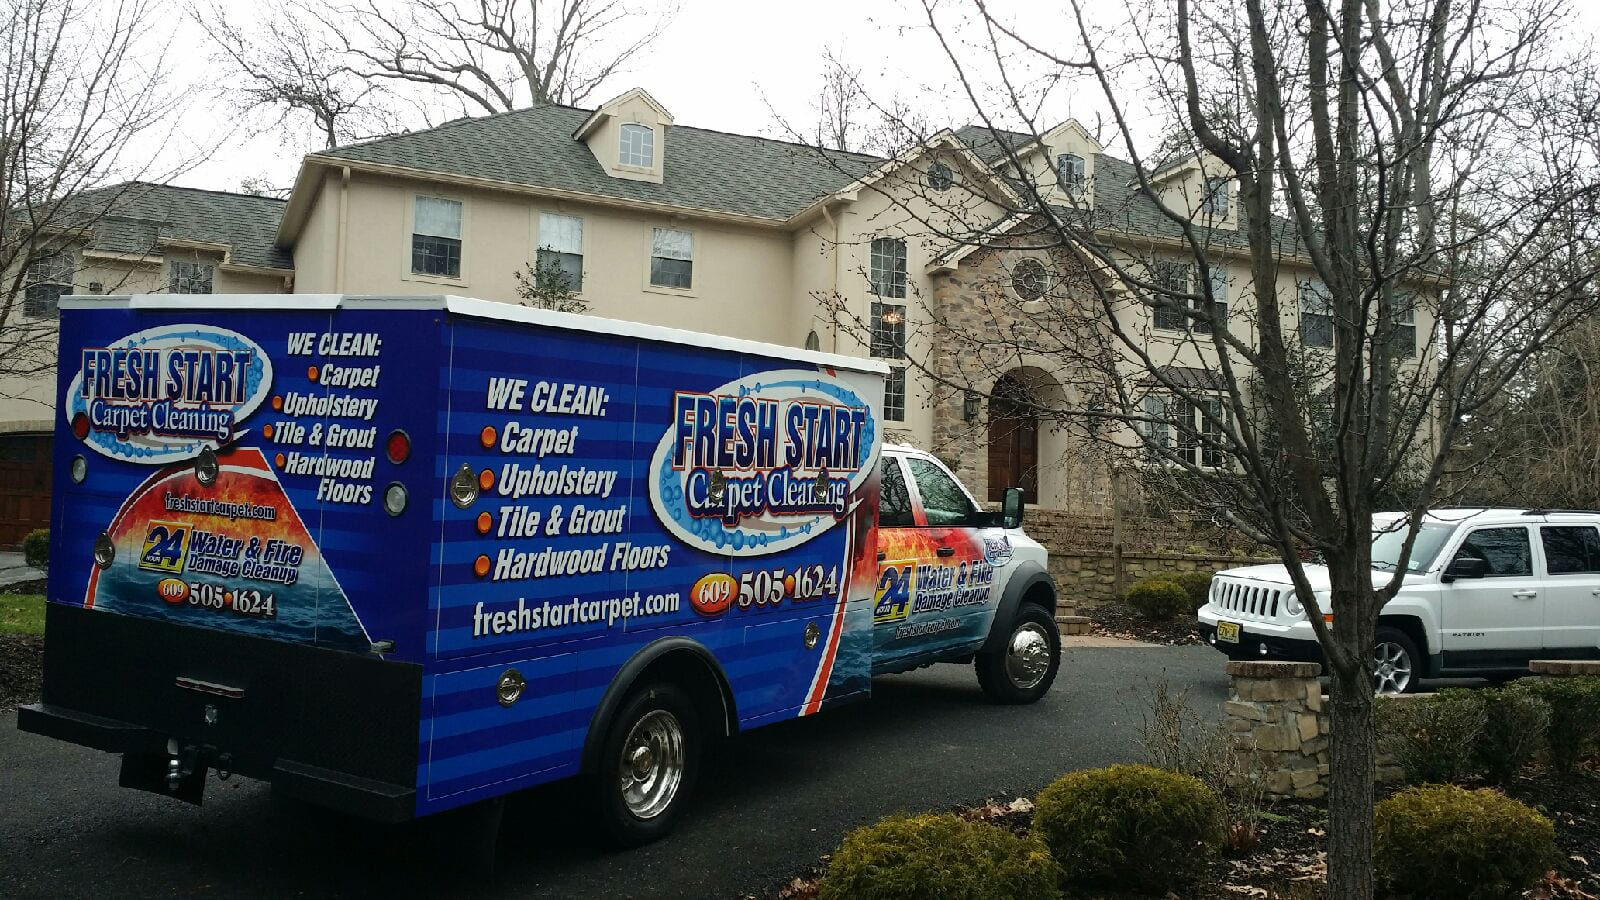 Our company has been serving the South Jersey and Philadelphia areas for over 18 years.